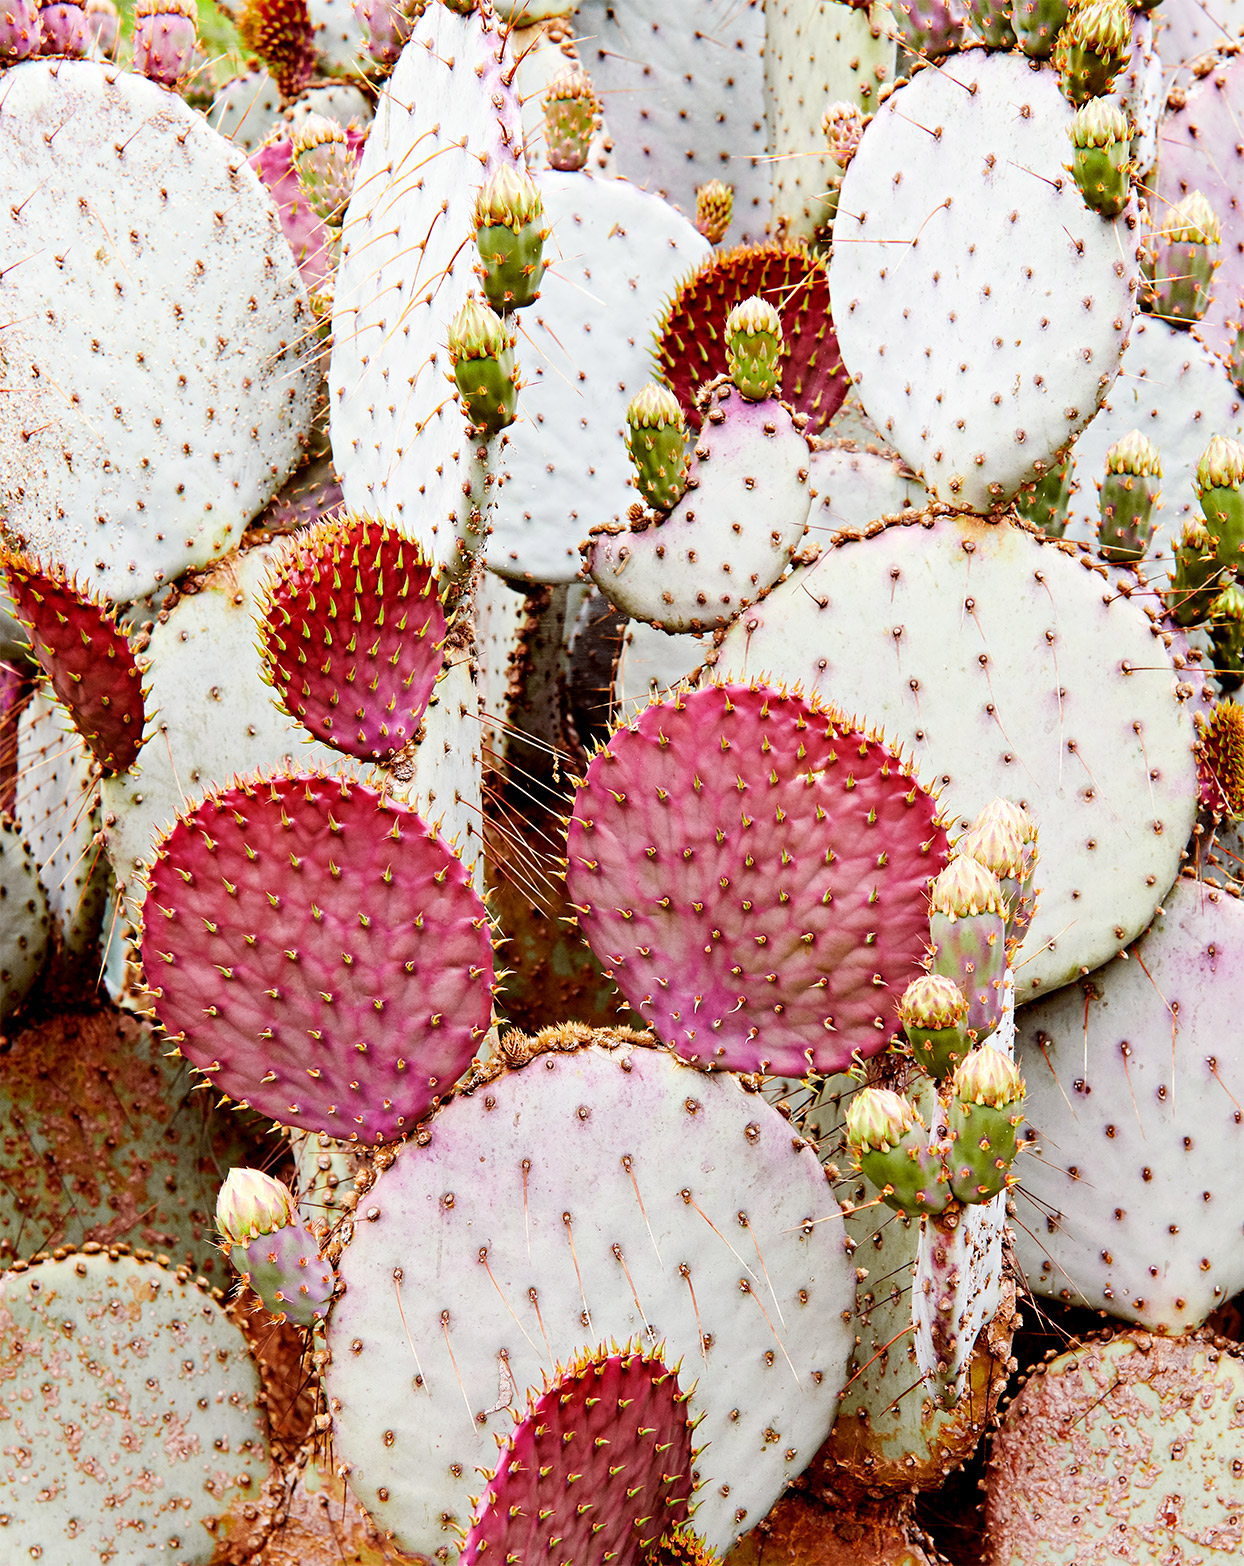 pink prickly pears cactus